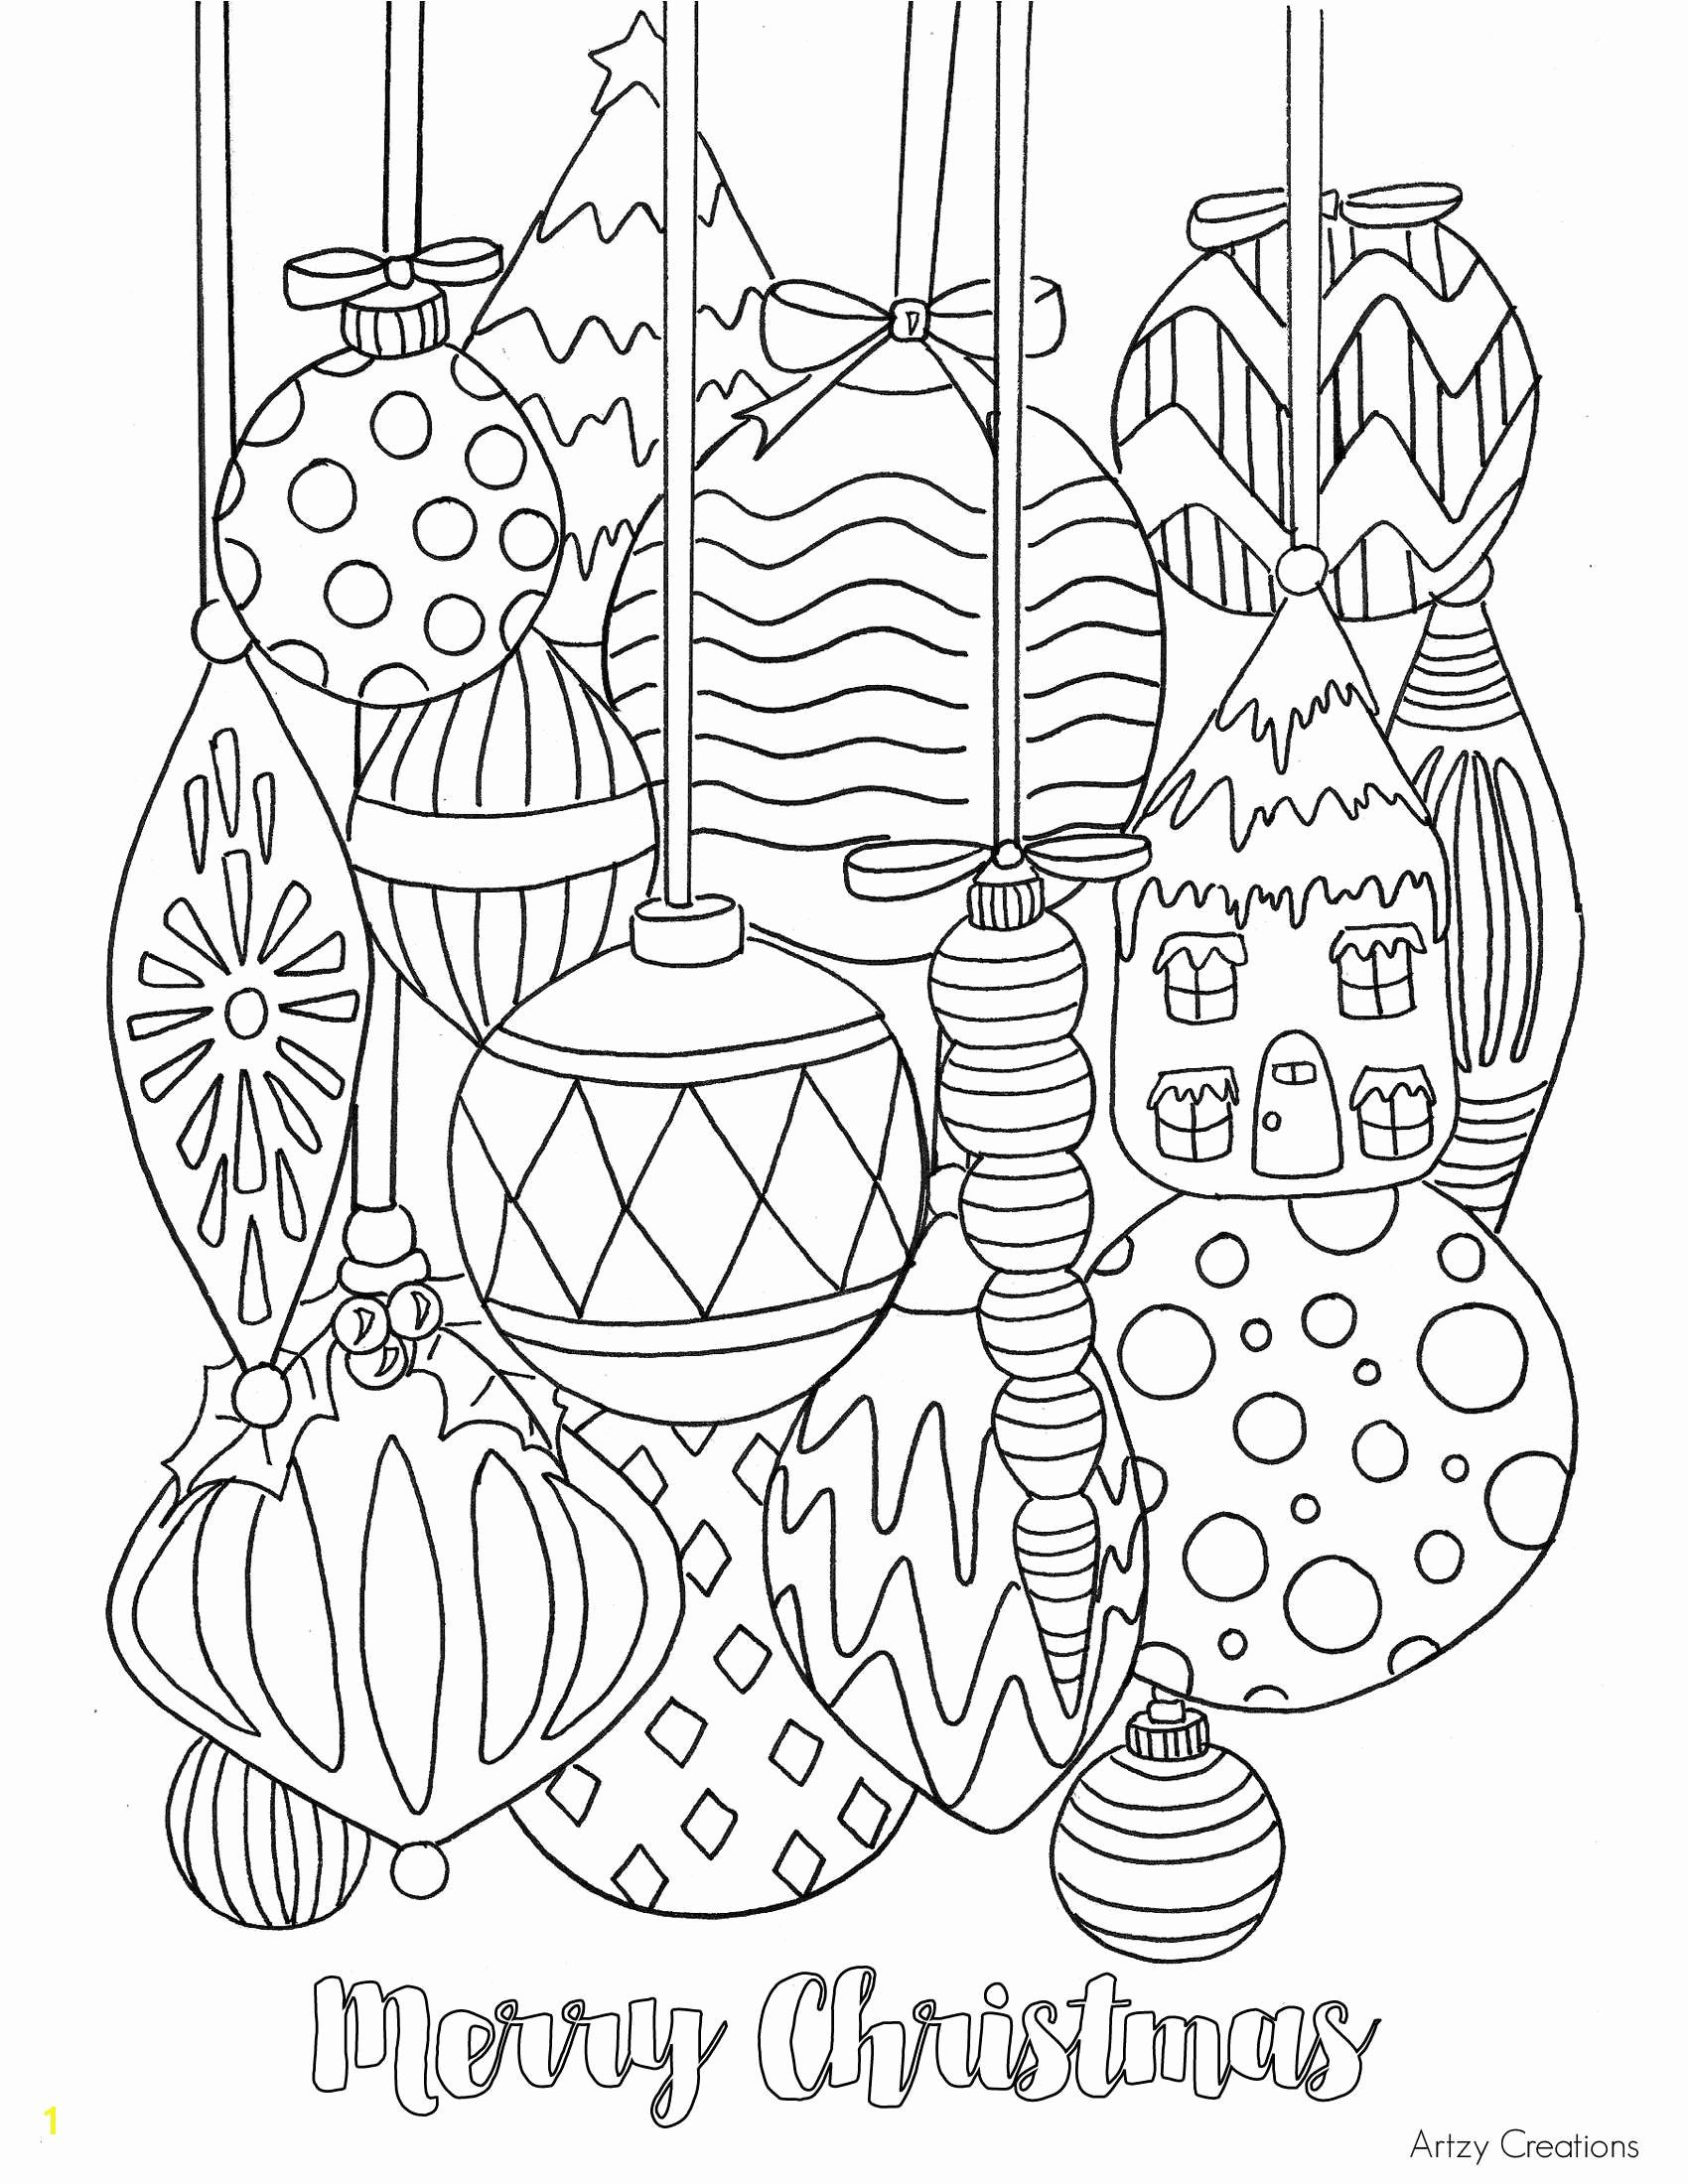 Free Printable Christmas Ornament Coloring Pages Beautiful Coloring Pages Color In 2020 Printable Christmas Coloring Pages Christmas Coloring Books Cool Coloring Pages